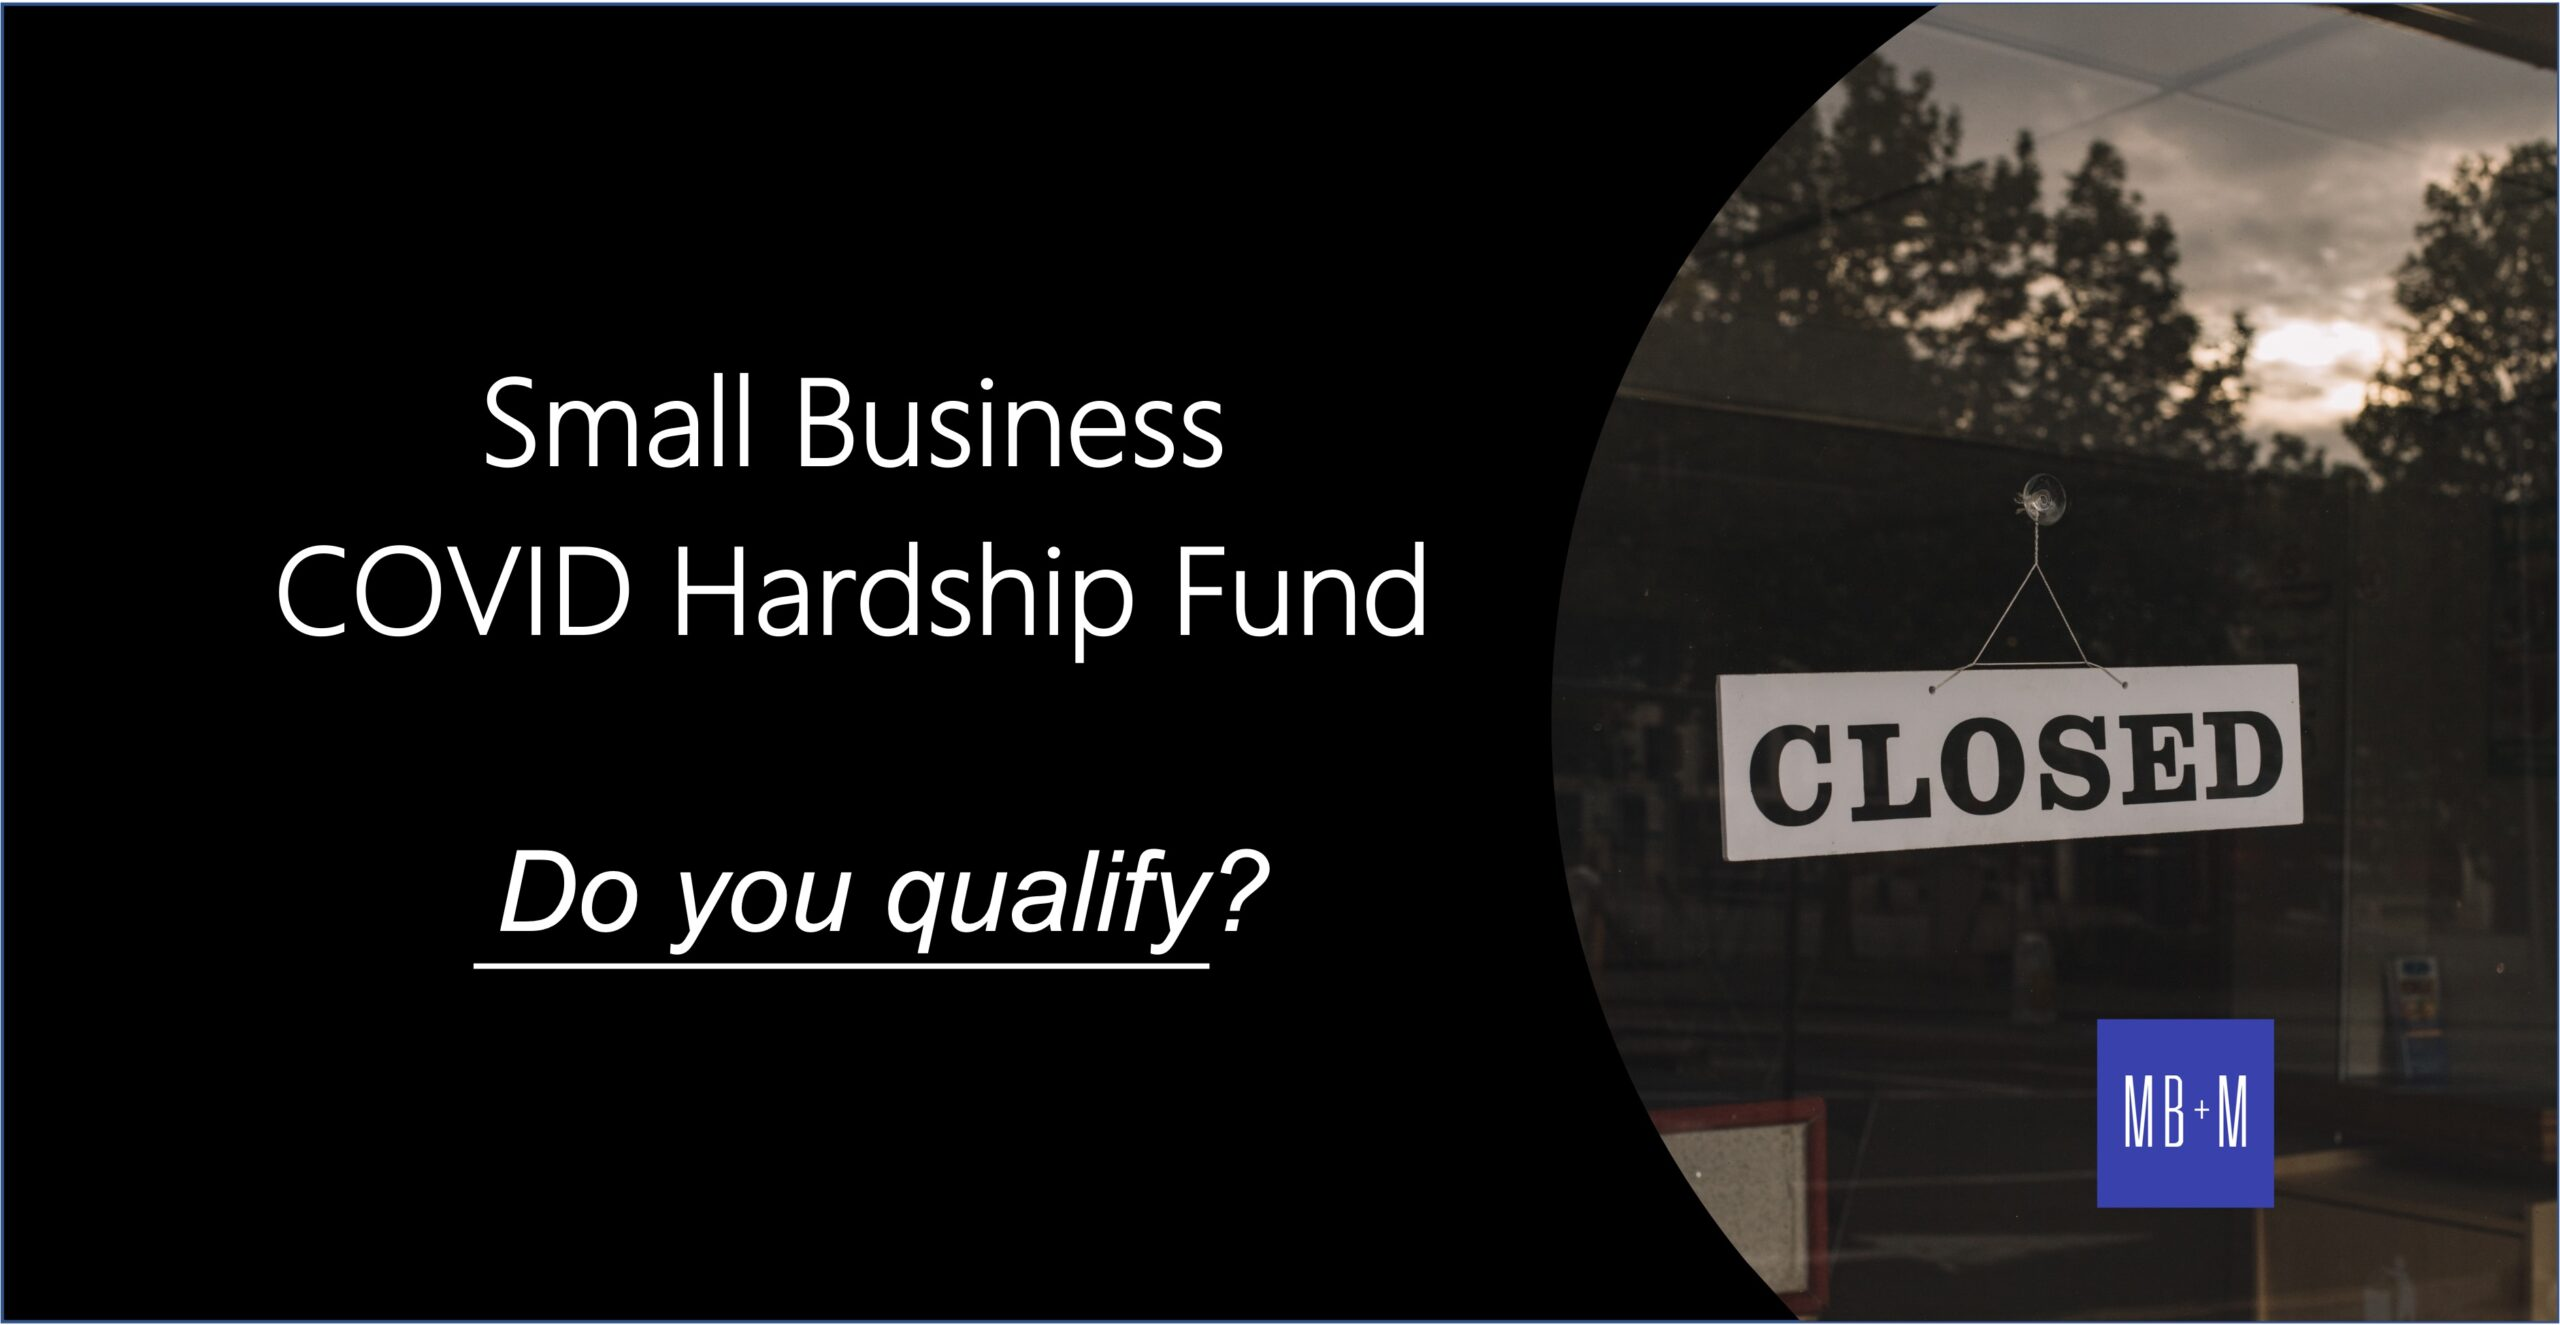 Small Business COVID Hardship Fund